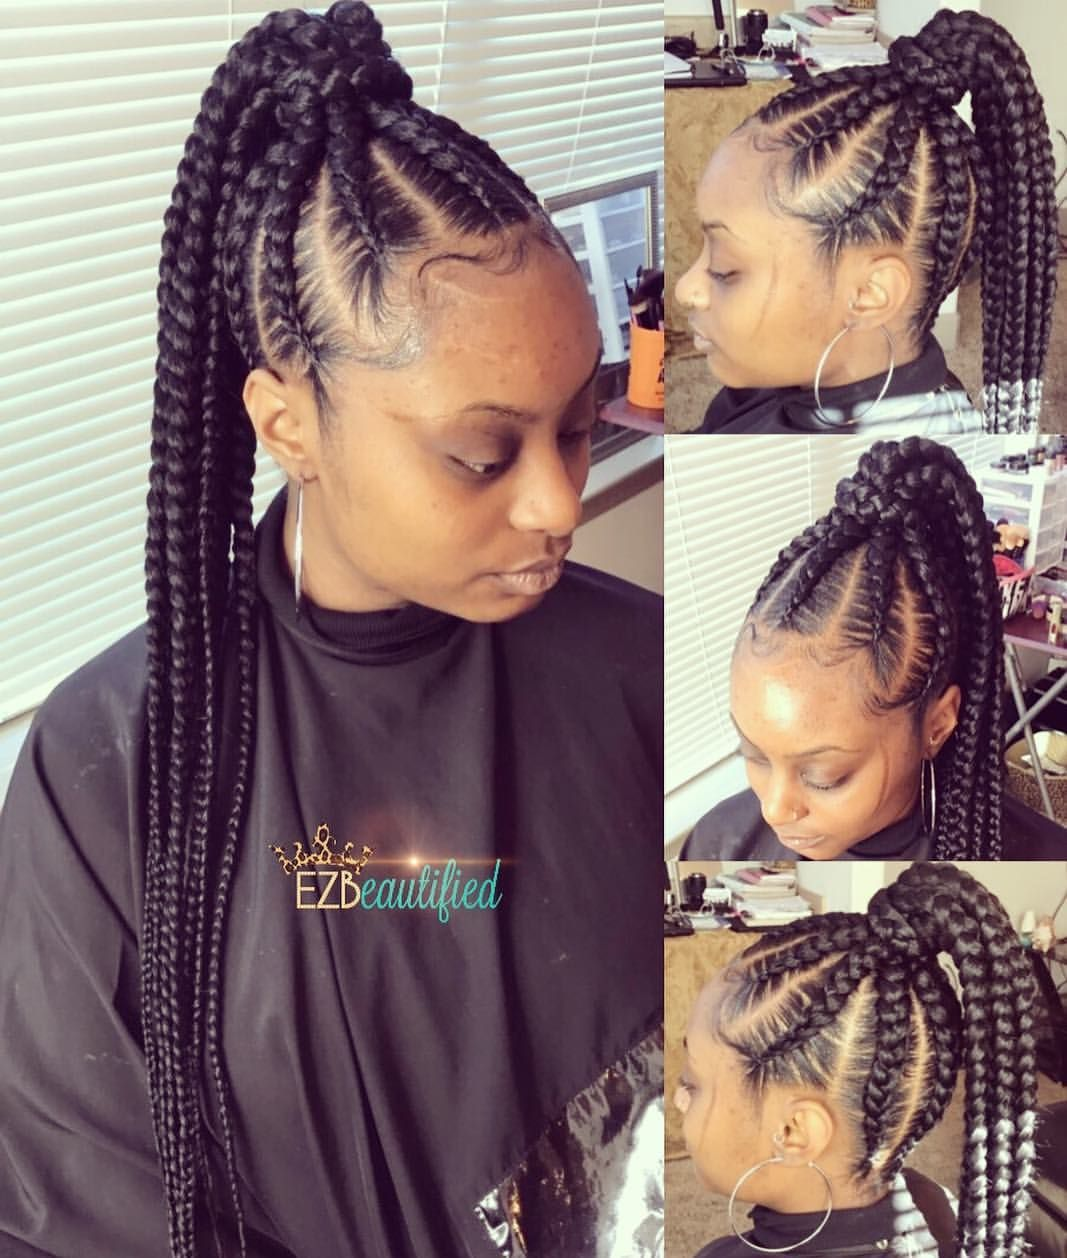 210 Likes 3 Comments Brejia Breejay Ezbeautified On Instagram High Basic Braided Ponytail I Have Braided Ponytail Ponytail Hairstyles Hair Styles